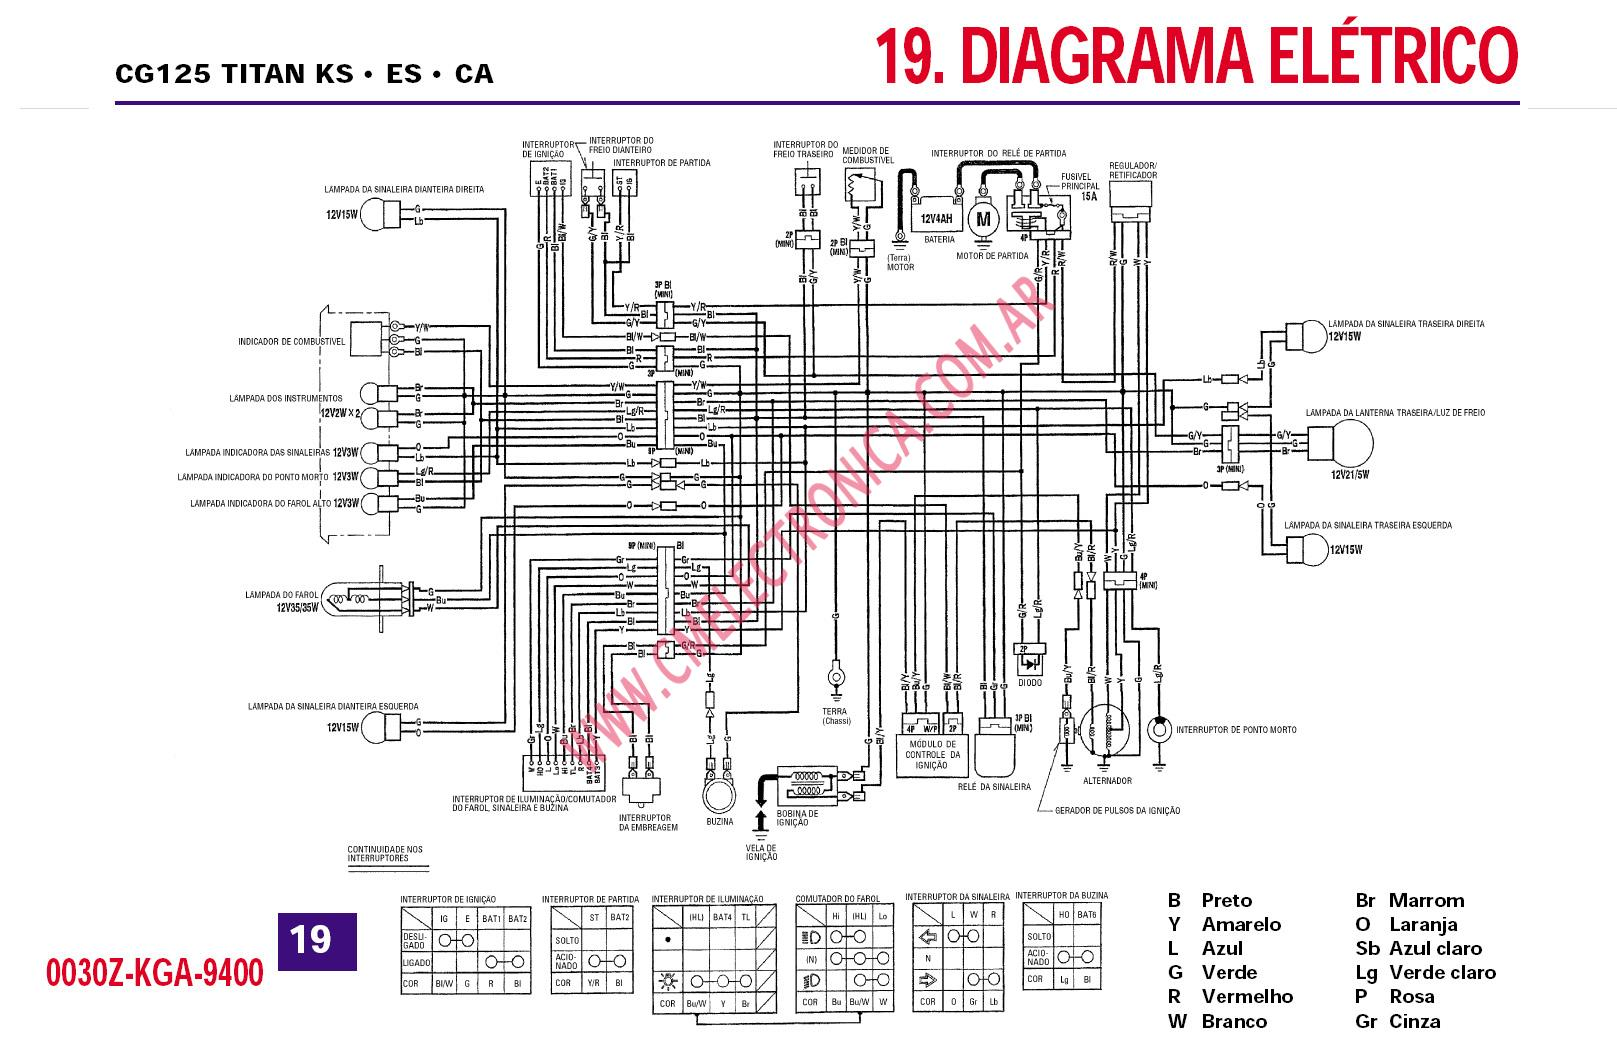 Honda Cg Titan Ks Es on Suzuki Savage Wiring Diagram